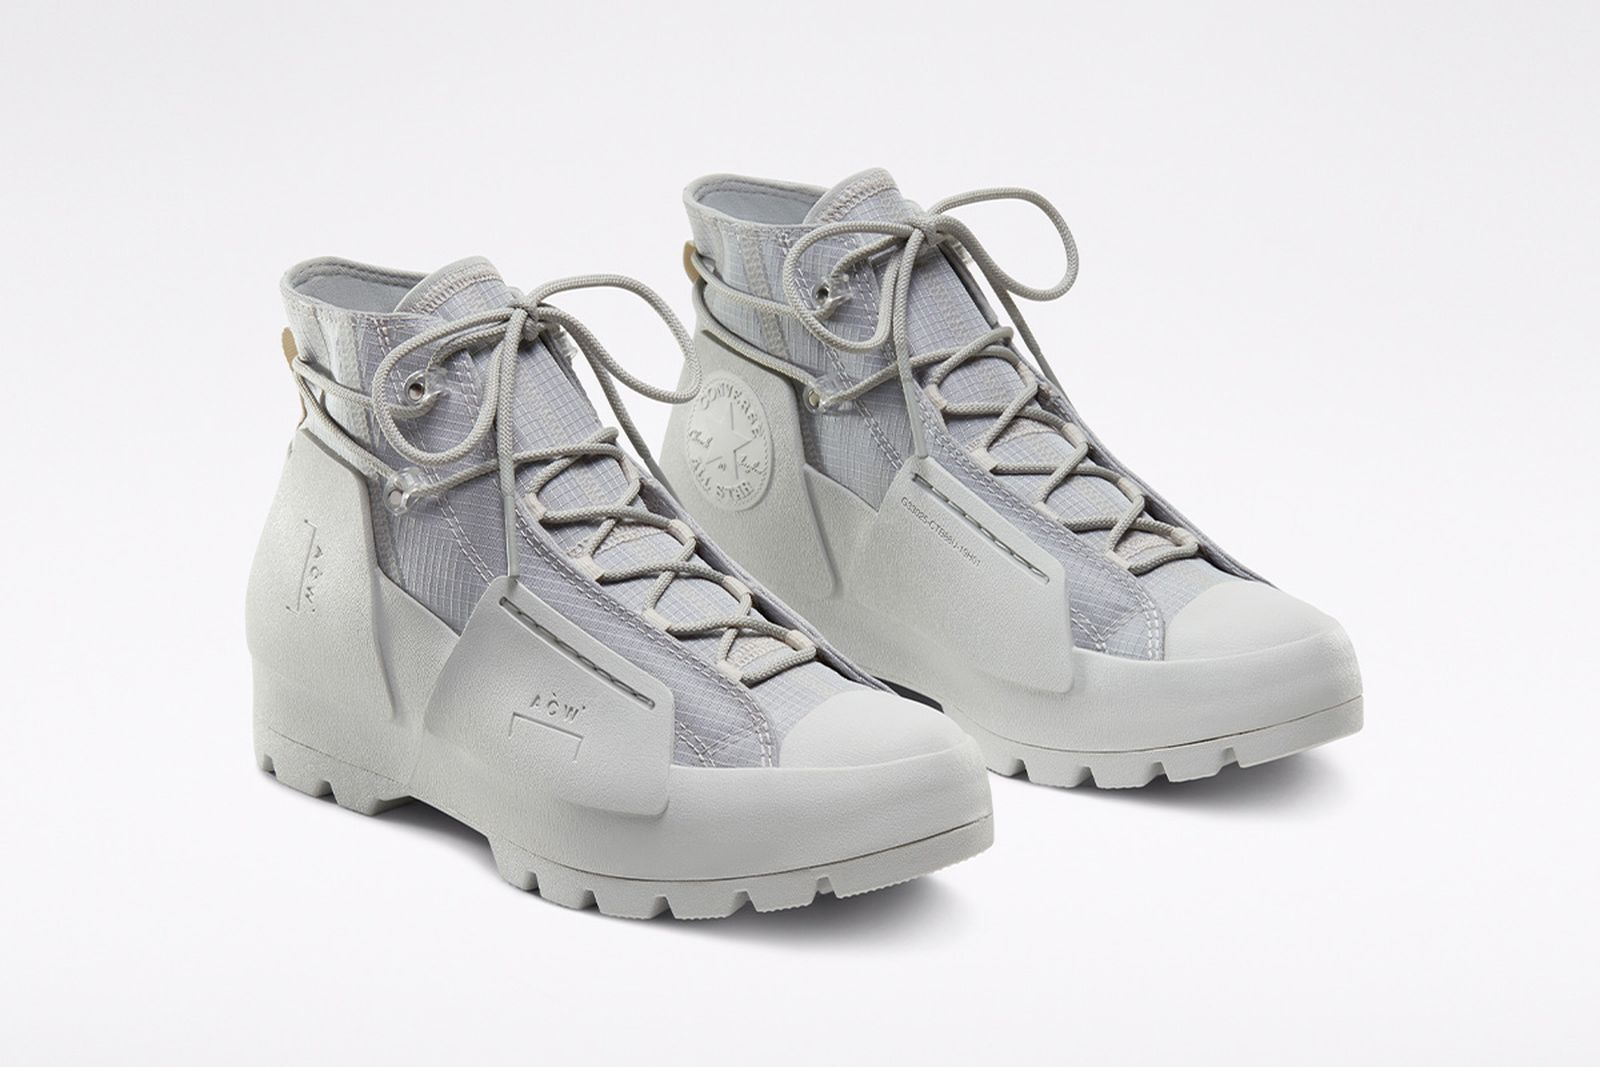 a-cold-wall-converse-chuck-taylor-lugged-release-date-price-02